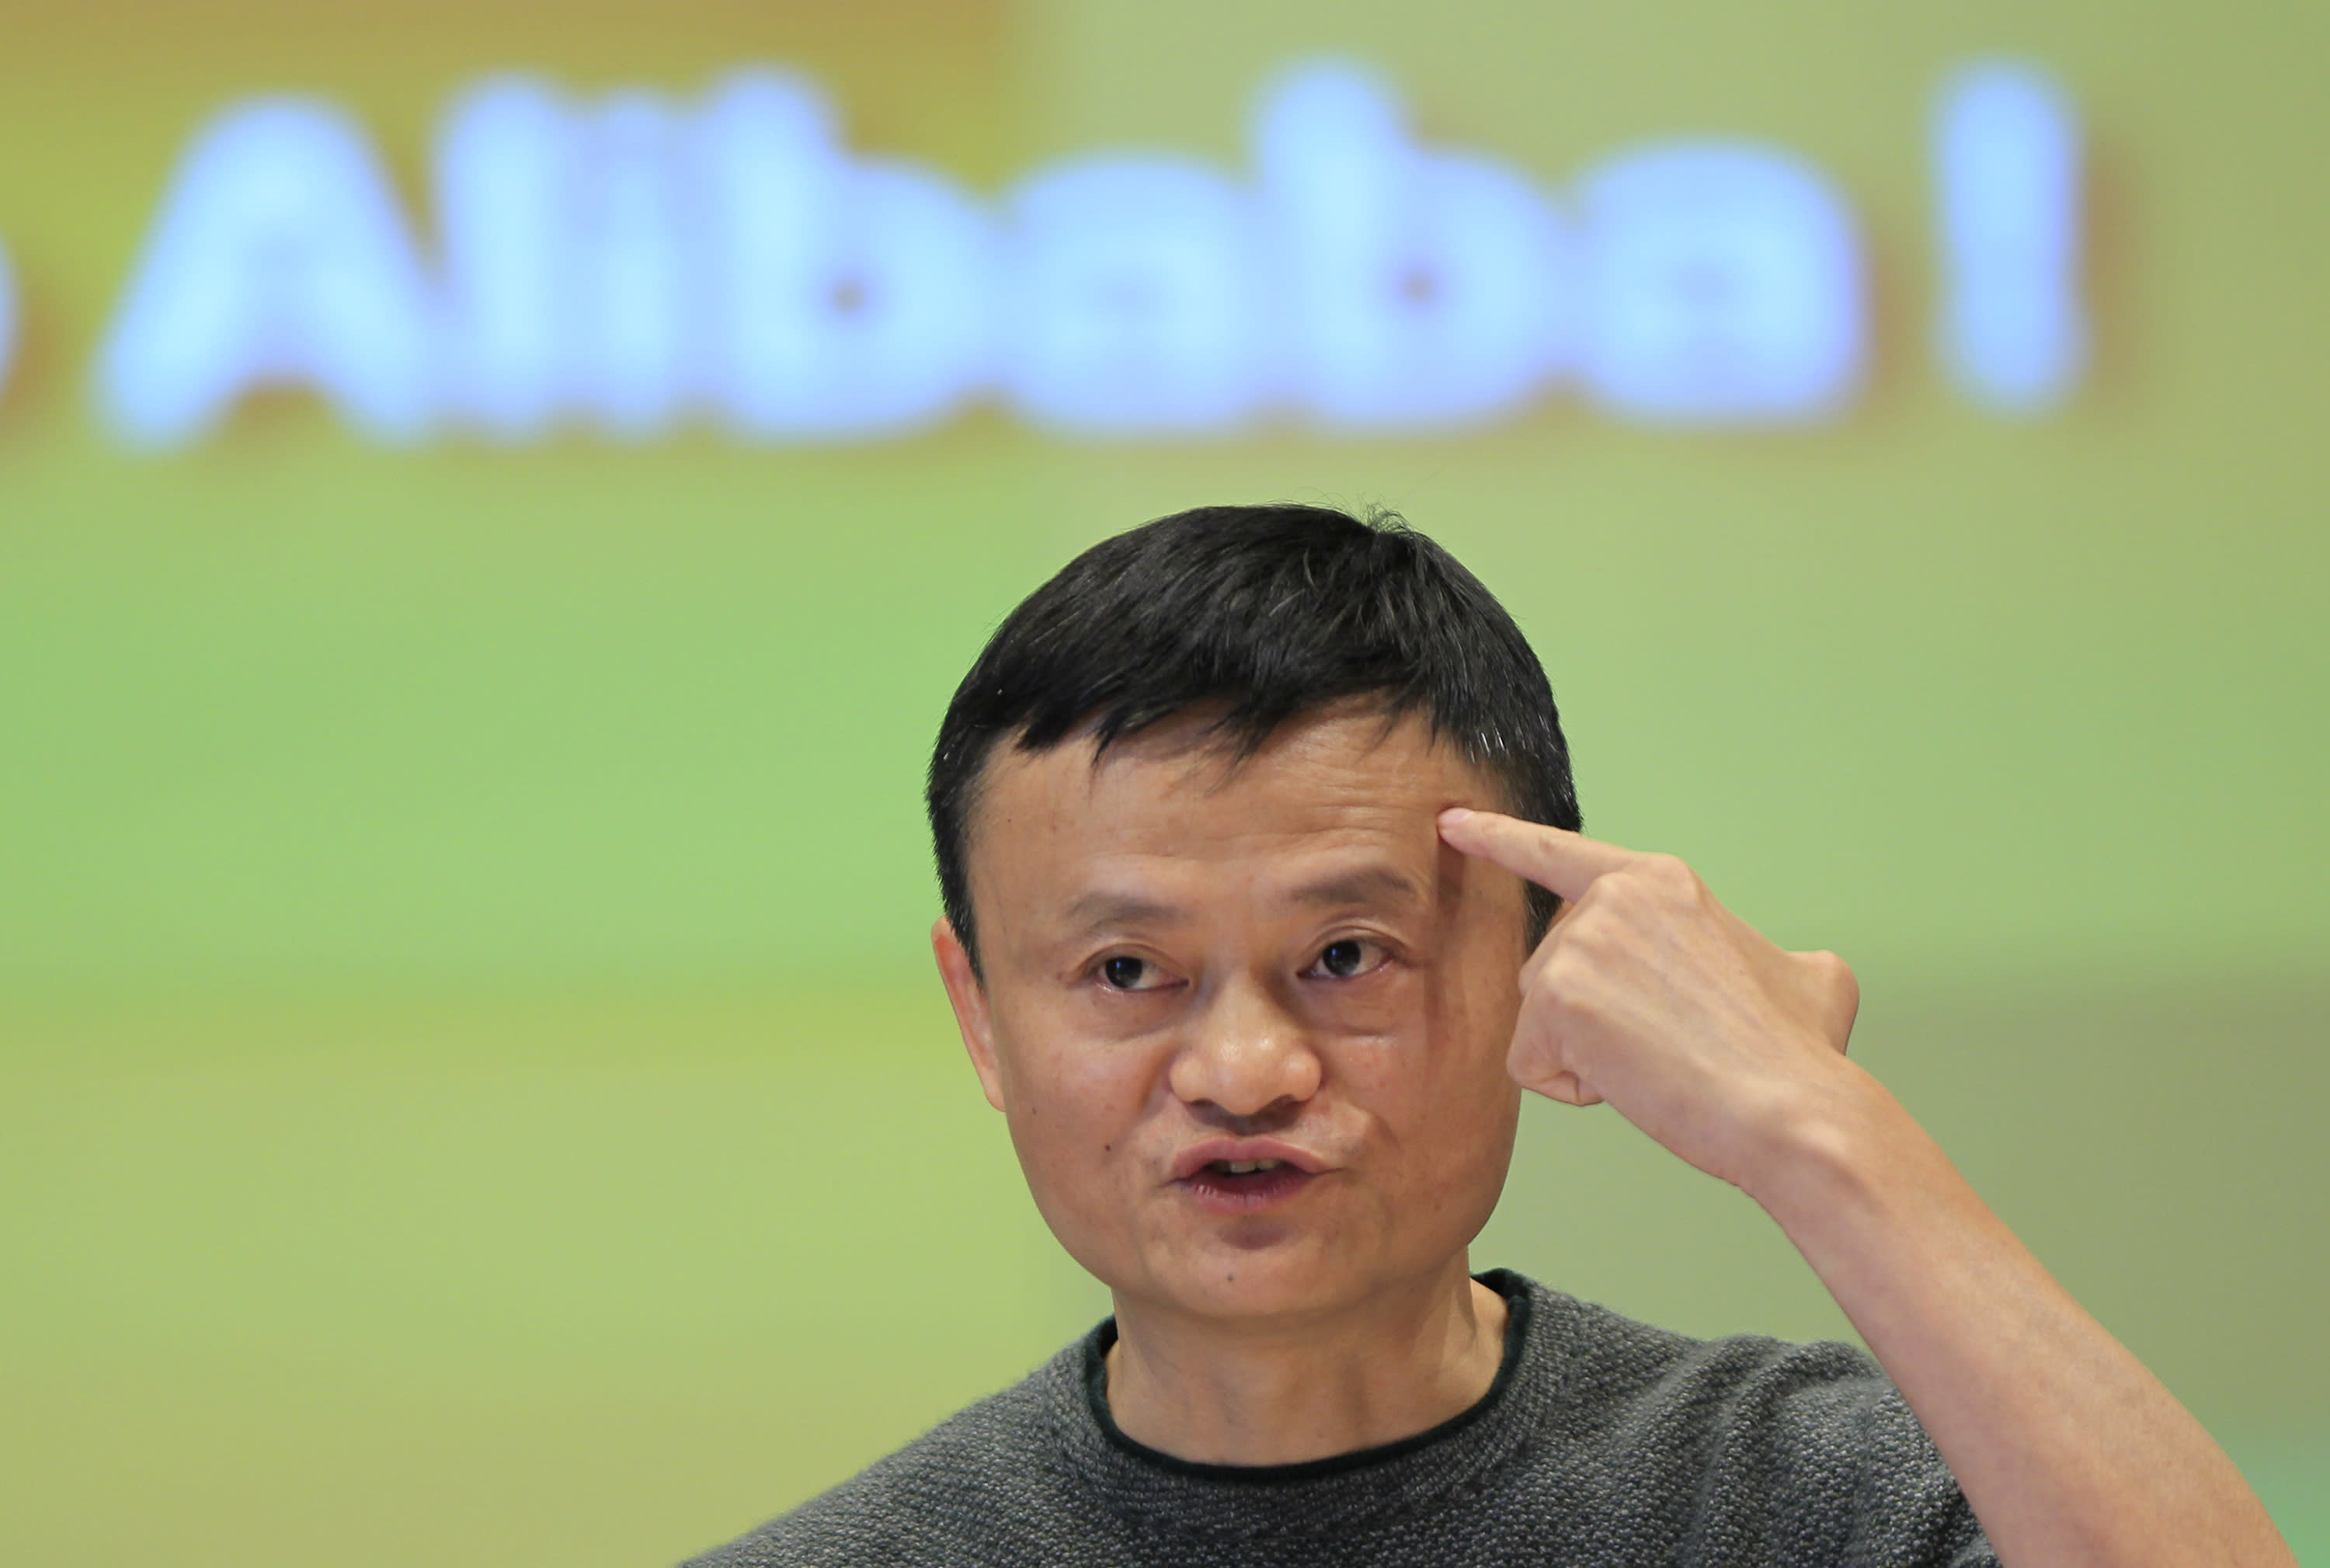 Alibaba revenue surges 42%, beating expectations despite China growth concerns